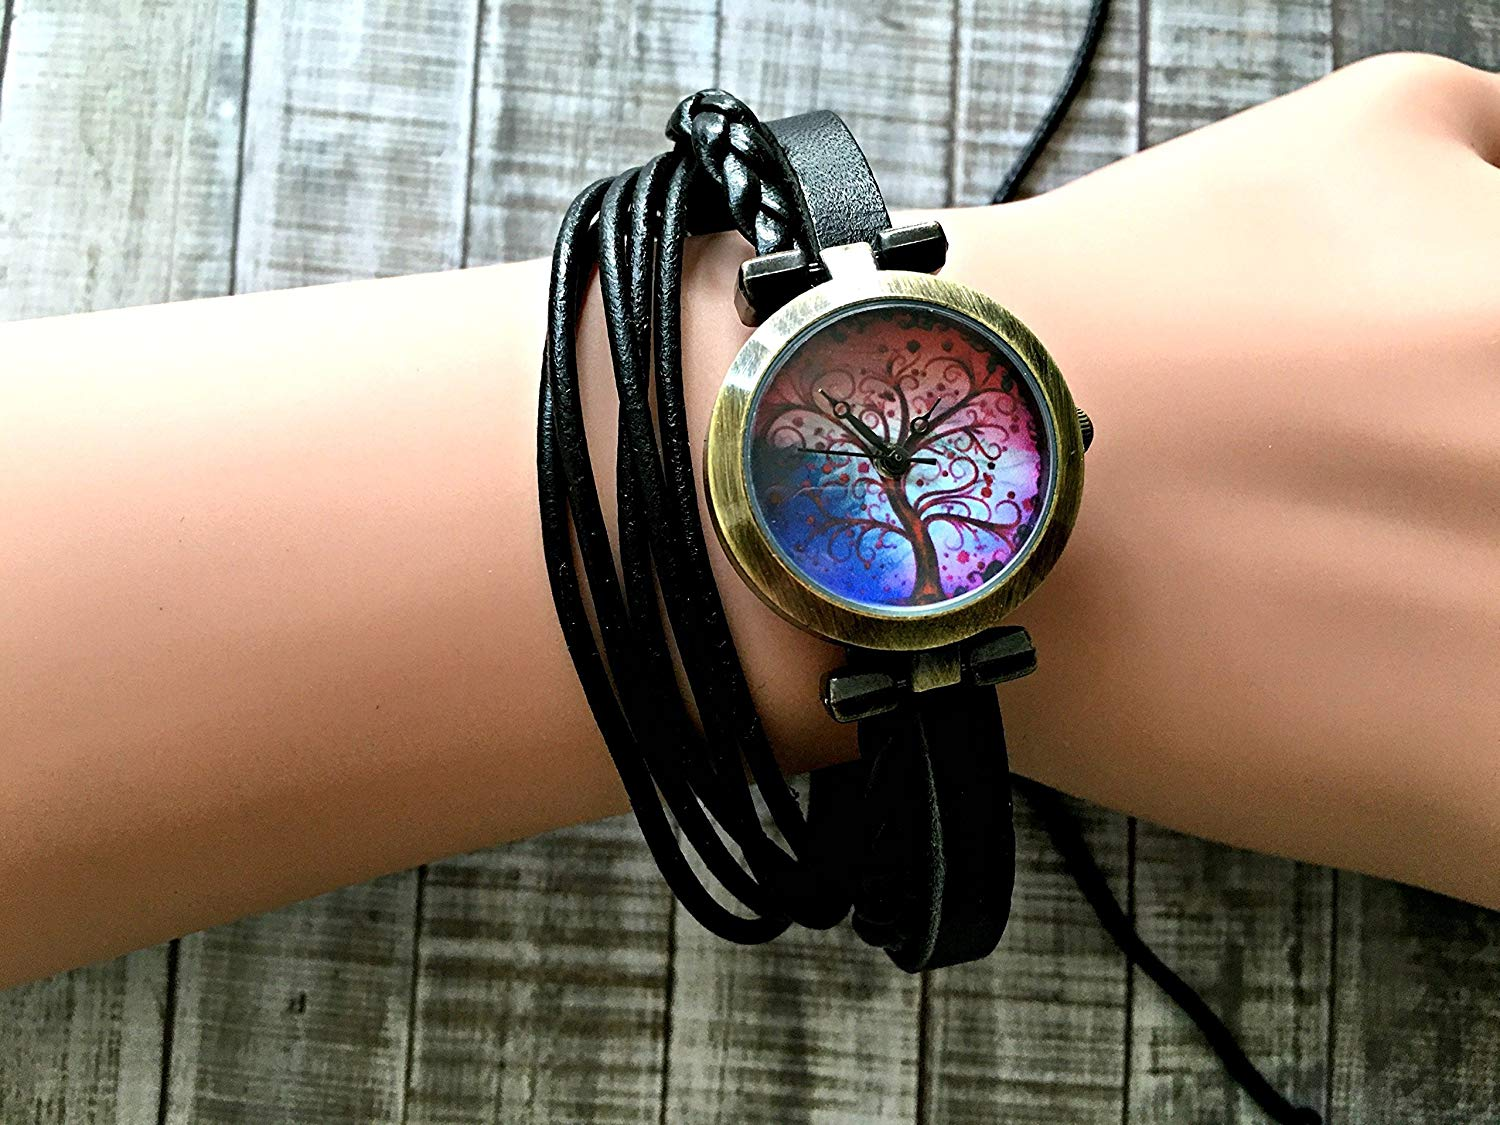 Tree Wrap Bracelet Leather Watch, Leather Wrap Bracelet Watch, Leather Wrap Art Watch, Vintage Retro Wrap Bracelet Watch, Wrap Genuine Leather Watch 007